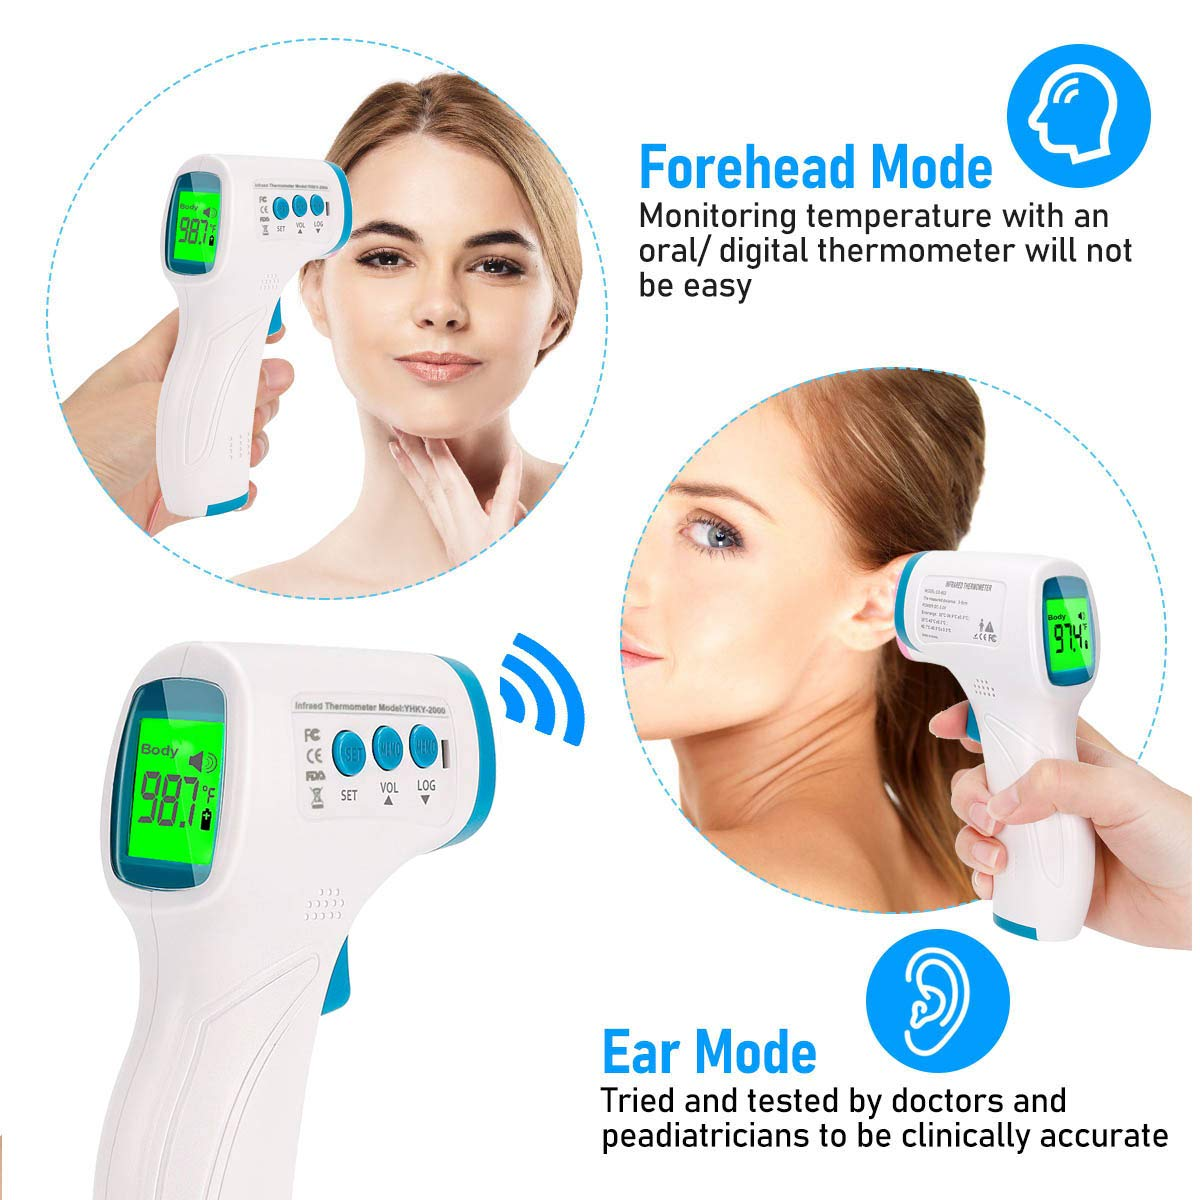 Non-Contact Forehead Infrared Thermometer with Fever Alarm,Body /& Object Mode,US Stock 3~5 Days Delivery Thermometer for Adults